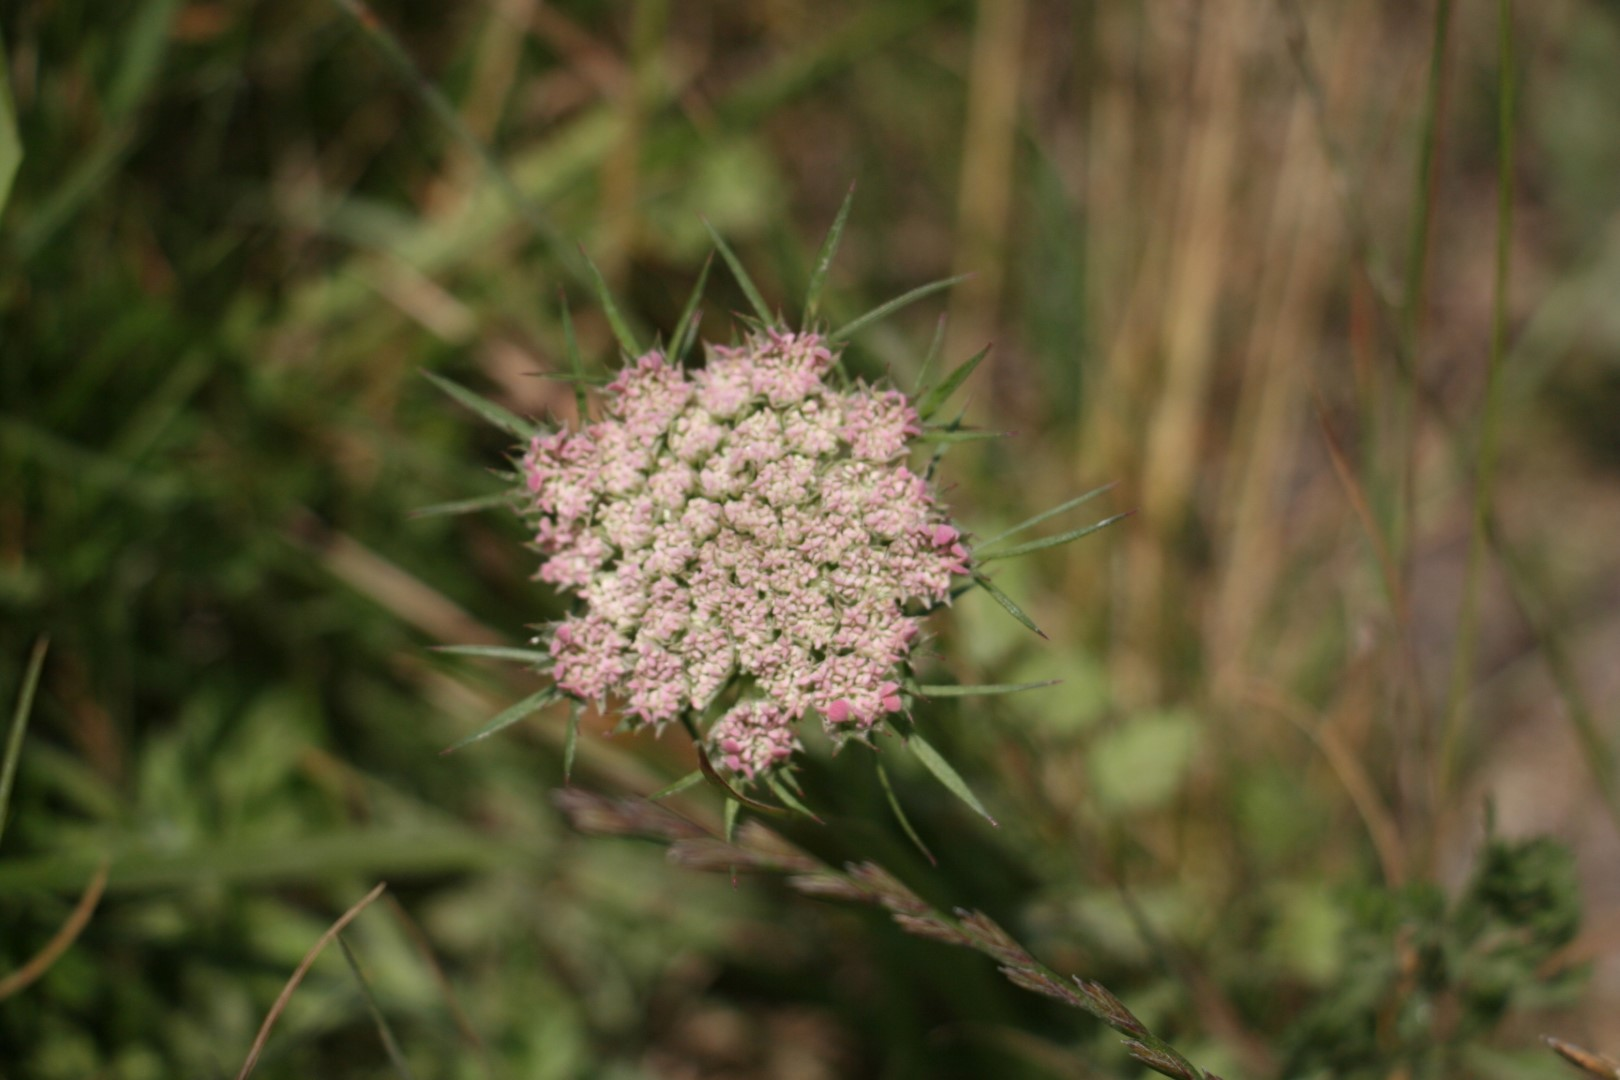 Sea Carrot flower - Daucus carota